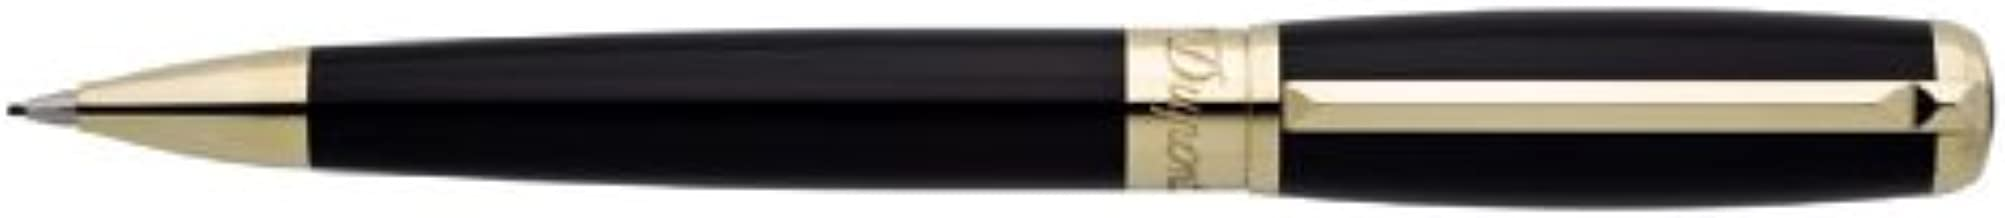 S.T. Dupont Elysee Black and Gold .7mm Pencil - 416574